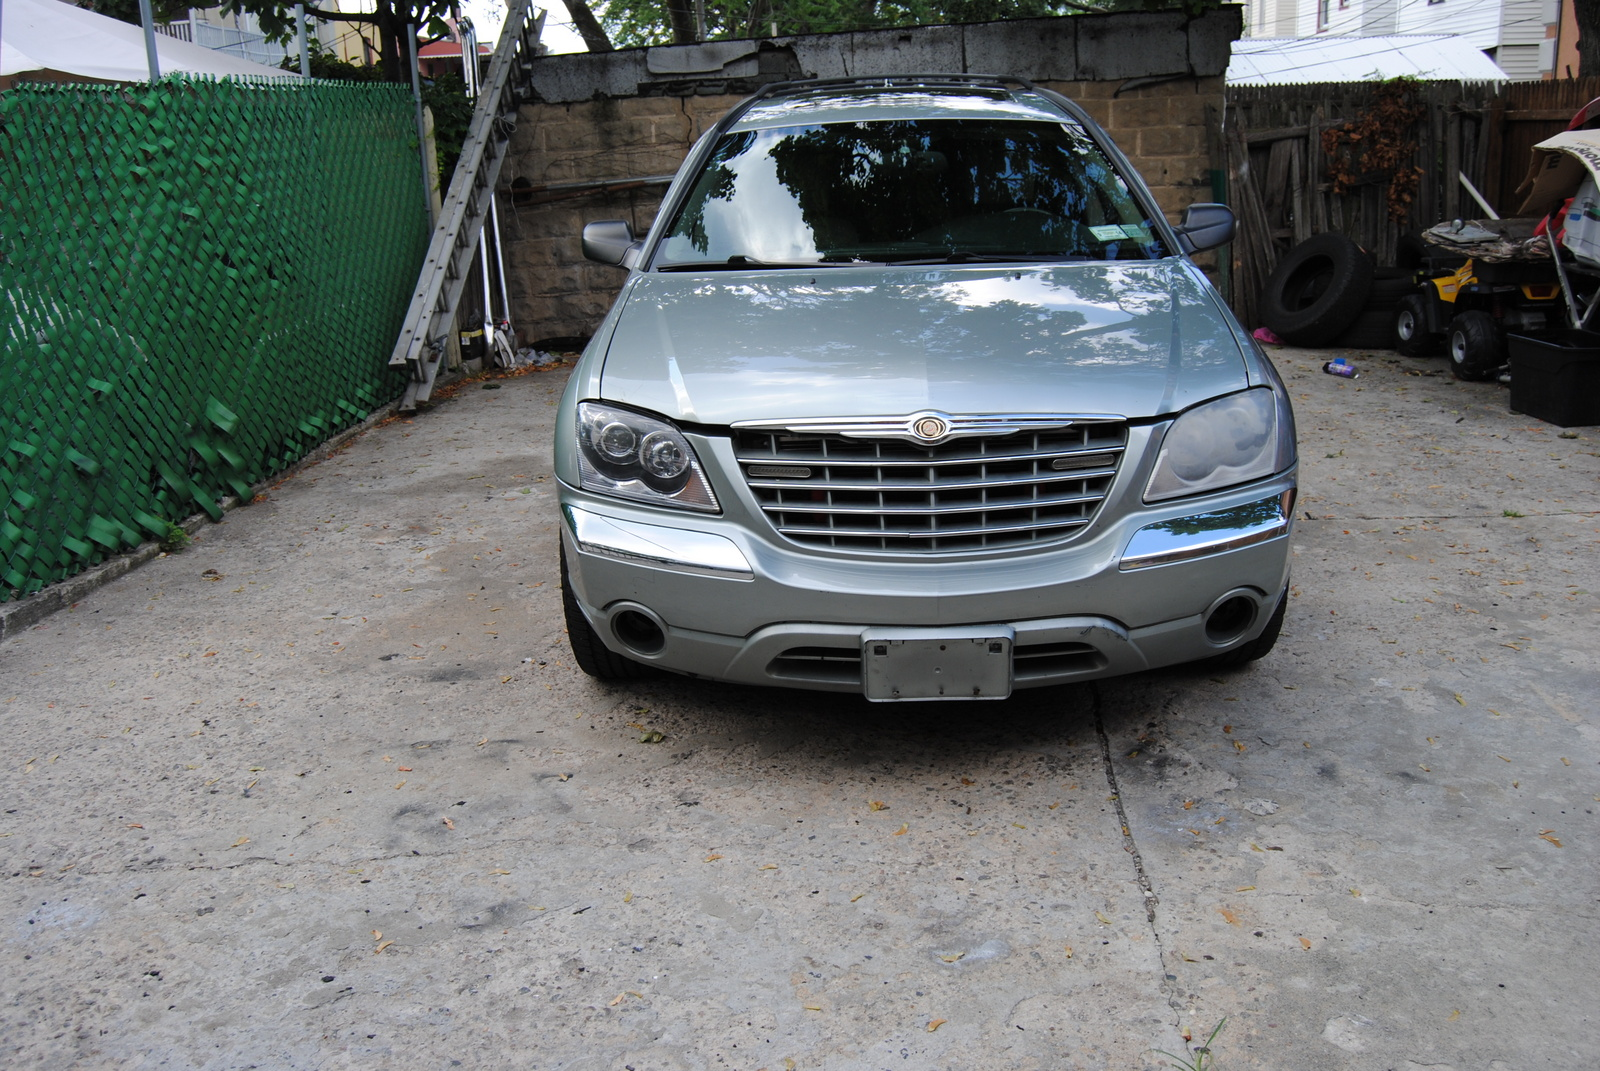 2004 chrysler pacifica exterior pictures cargurus. Cars Review. Best American Auto & Cars Review